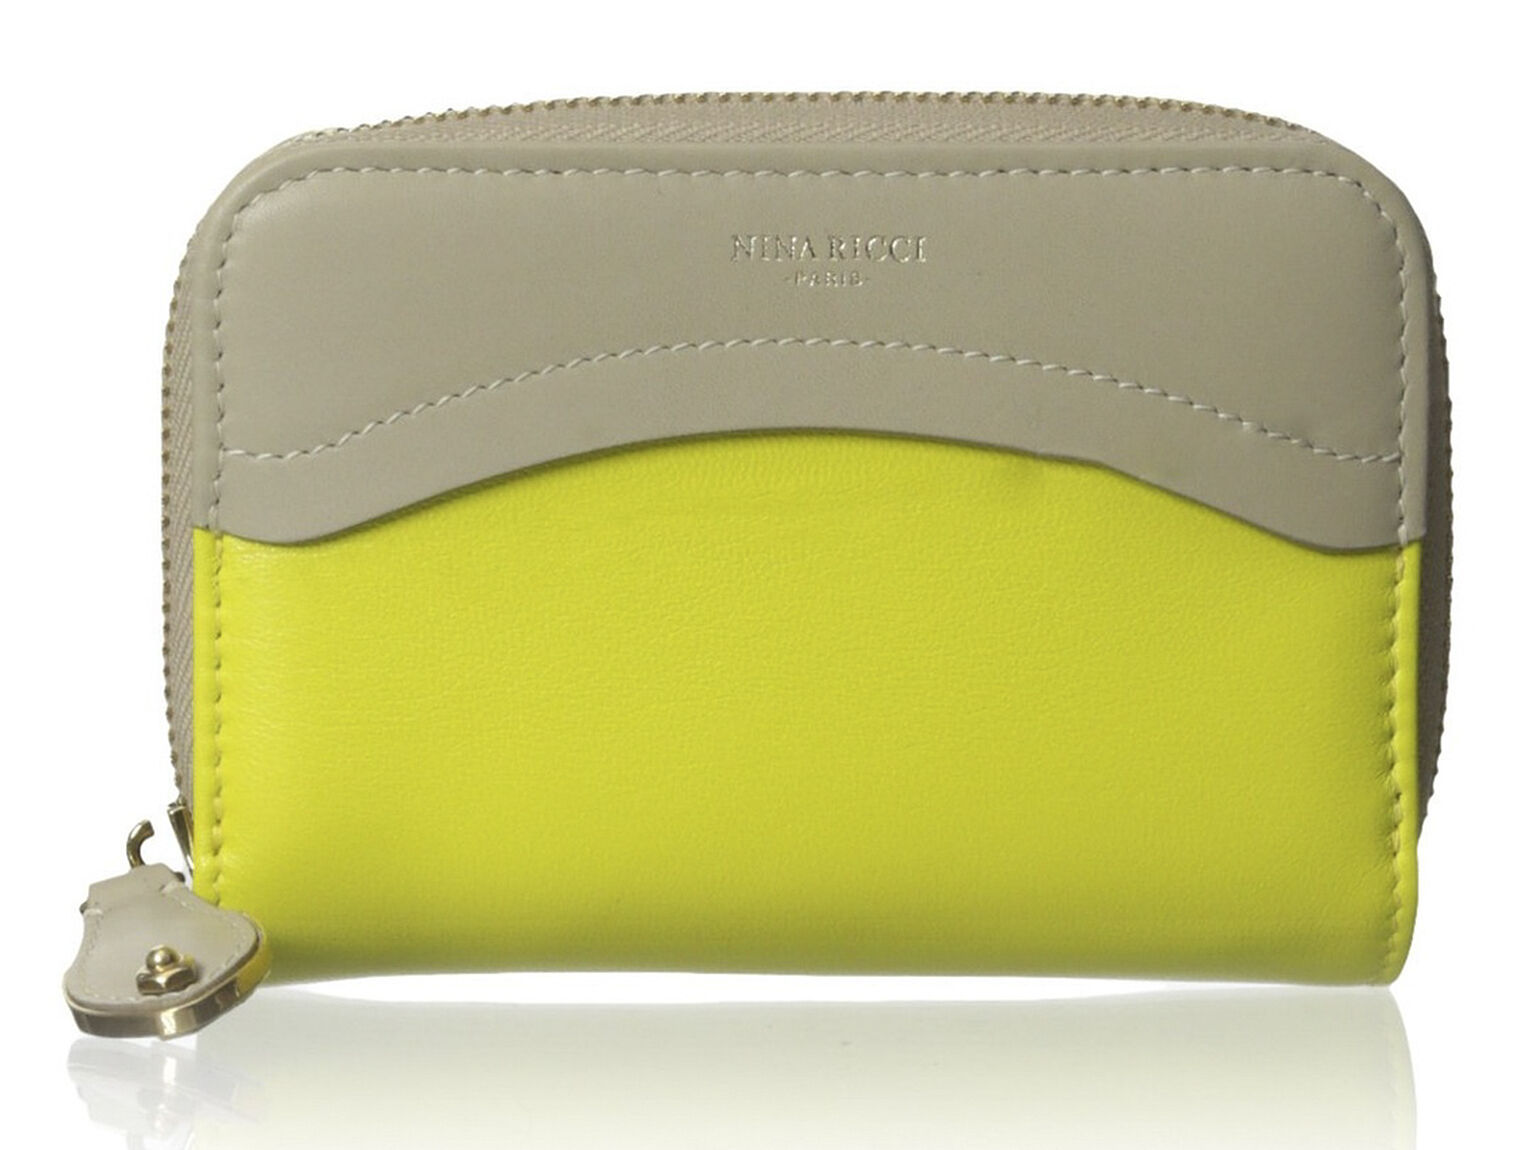 Primary image for Nina Ricci Yellow Beige Lambskin Leather Colorblock Zip Around Wallet $675 NWT